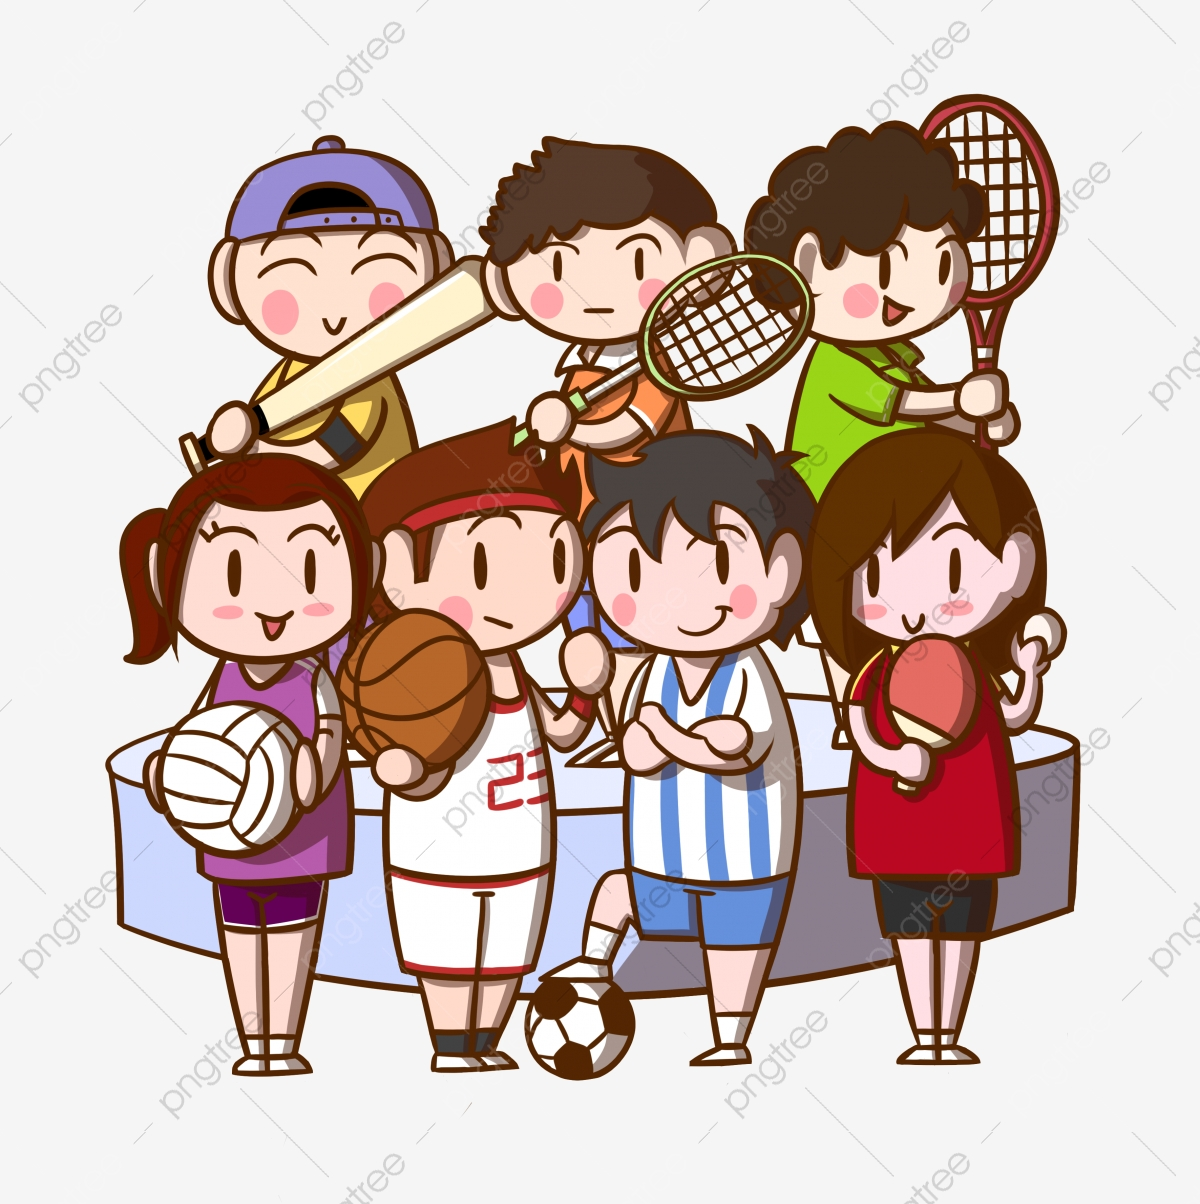 Child Primary School Student Student Physical Education Cartoon Child Juvenile Png Transparent Clipart Image And Psd File For Free Download